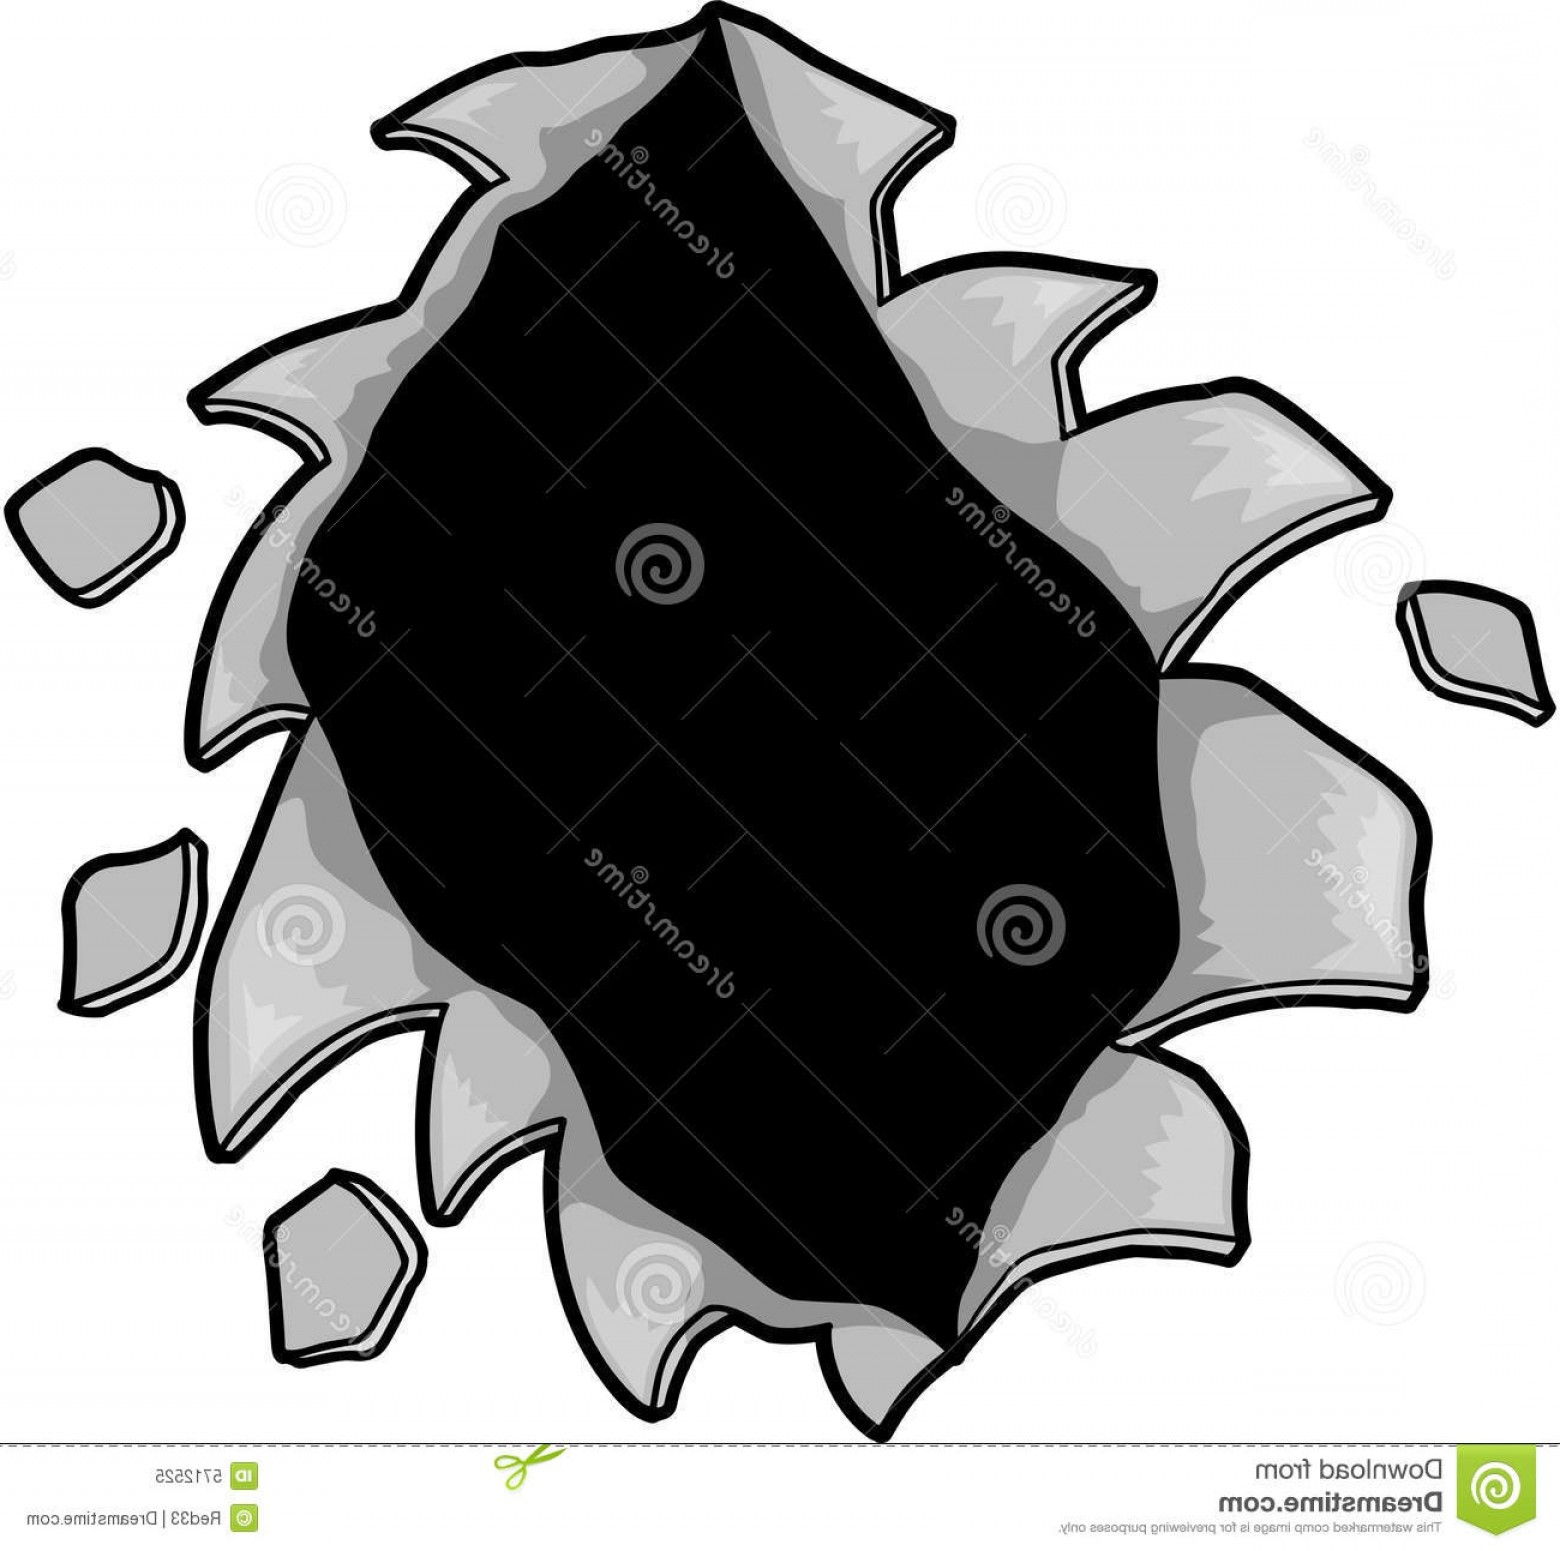 Rip Clip Art Vector: Royalty Free Stock Photo Ripped Hole Vector Image